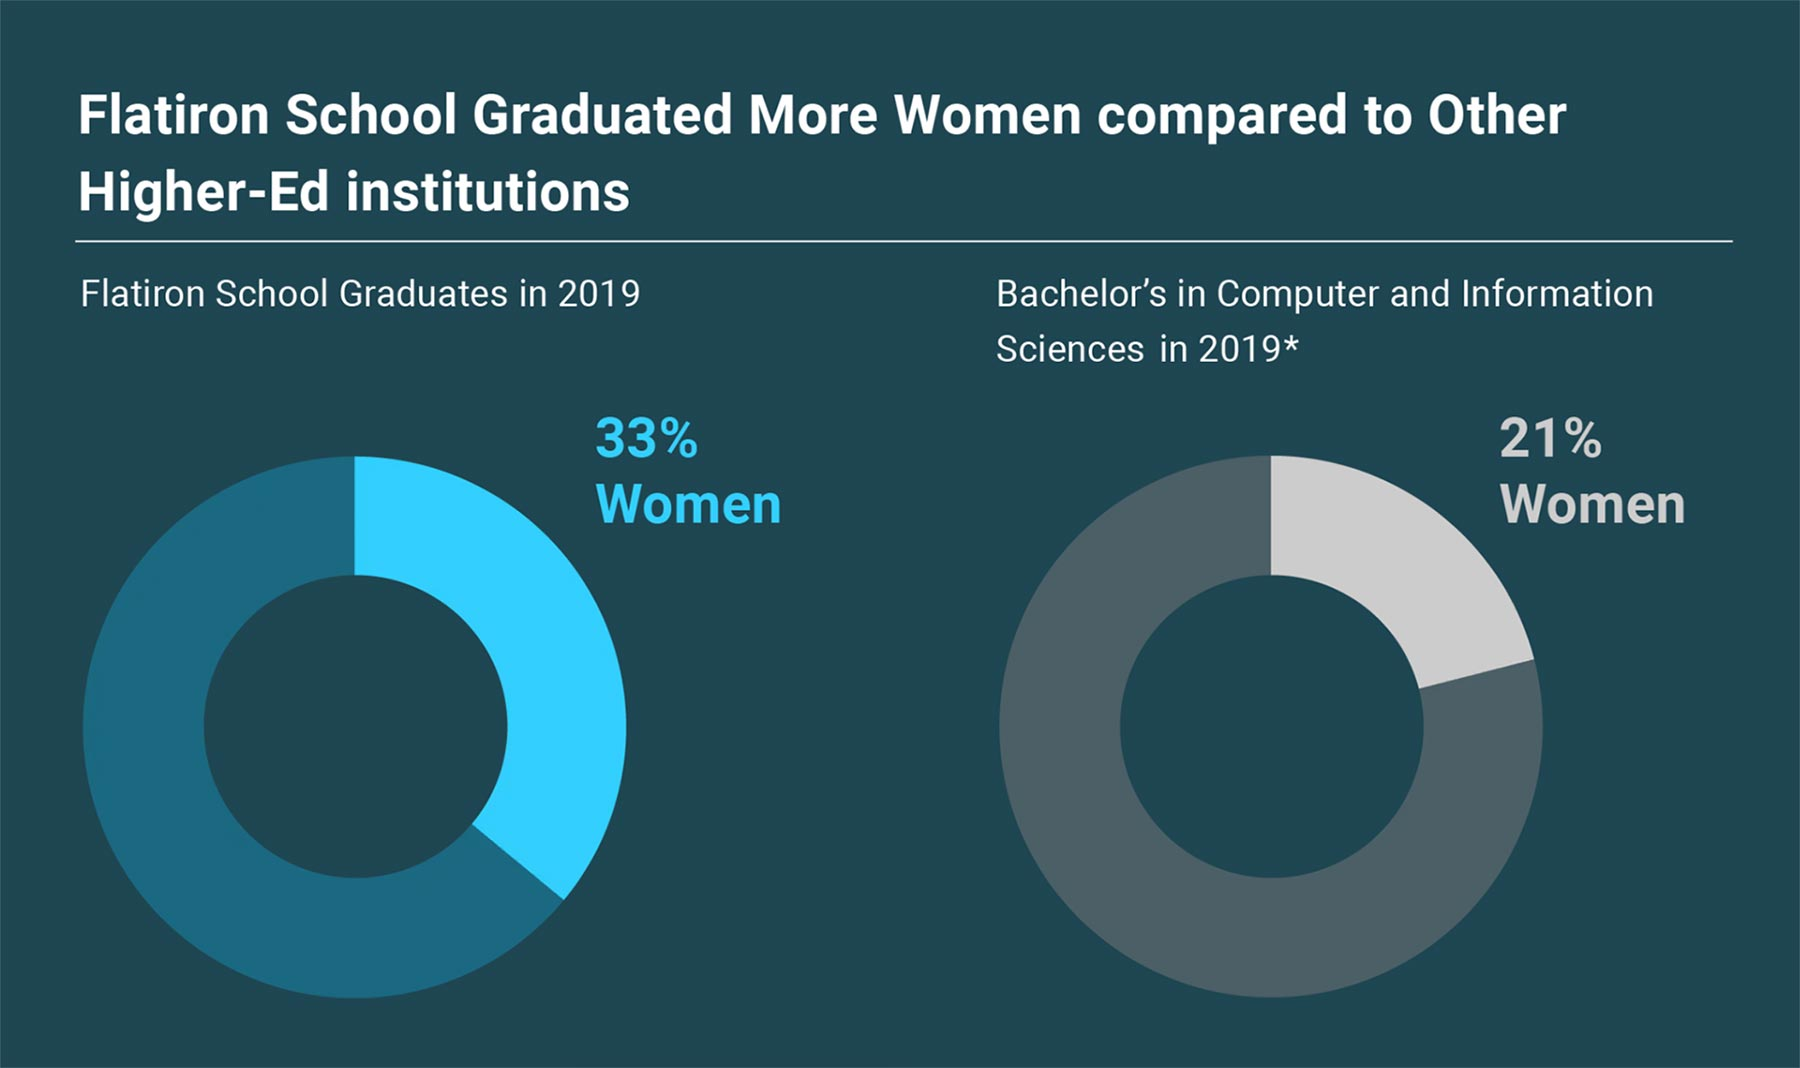 Flatiron School graduated more women compared to other higher-ed institutions. Flatiron School graduates in 2019 cohorts (33%) vs. women recipients of Computer and Information Science Bachelor's in 2019 (21%)